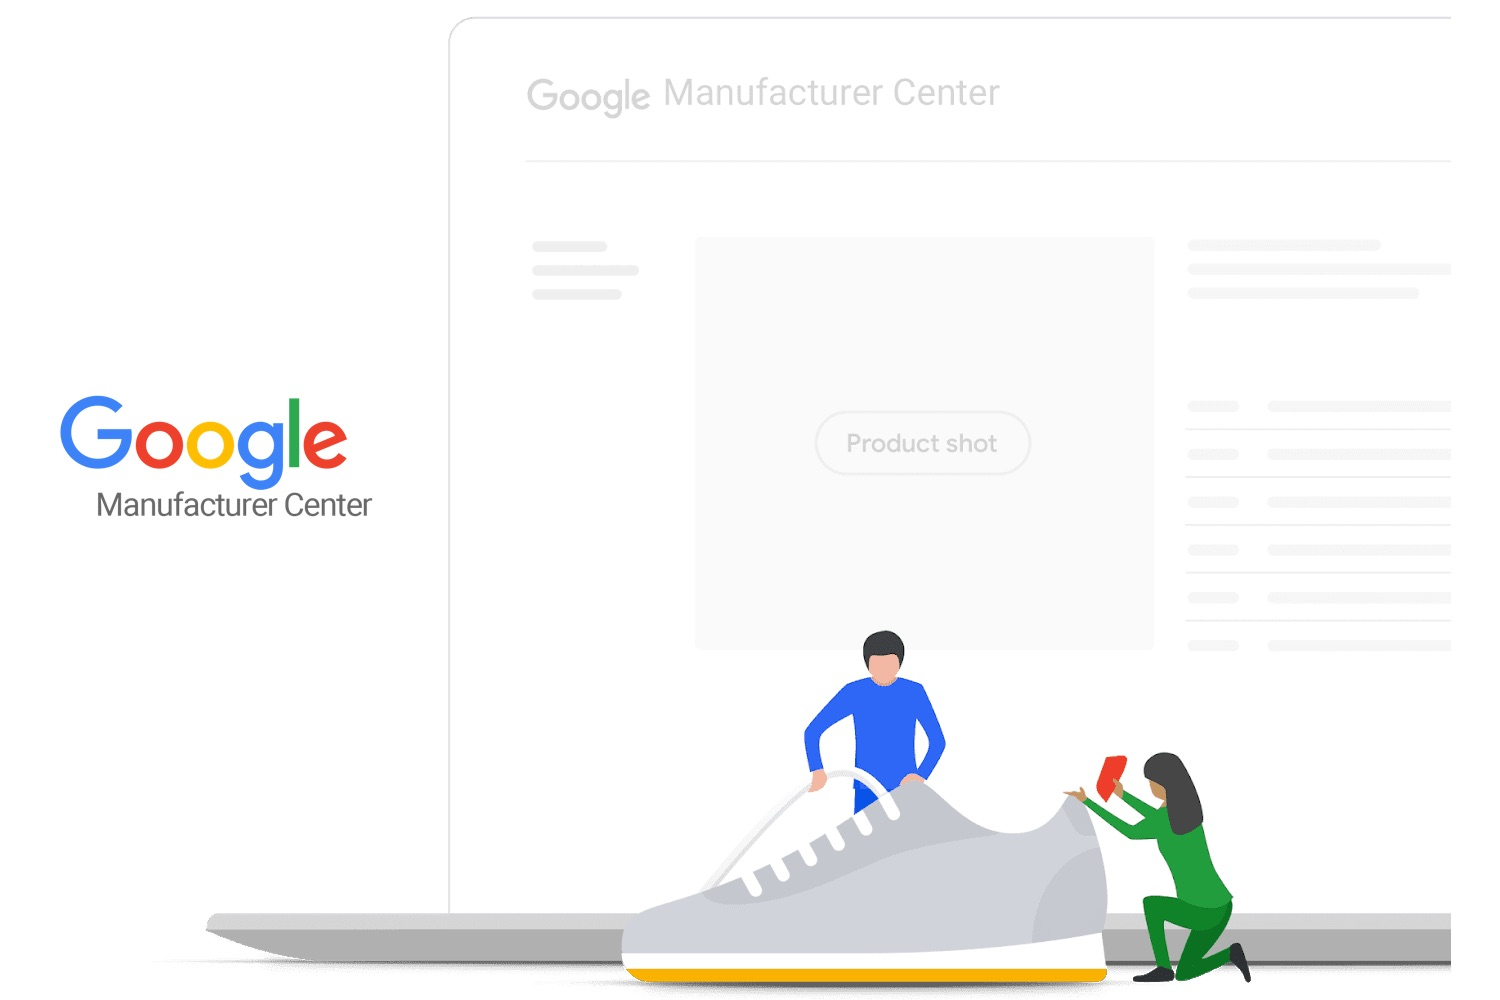 google manufacturer center, manufacturer center